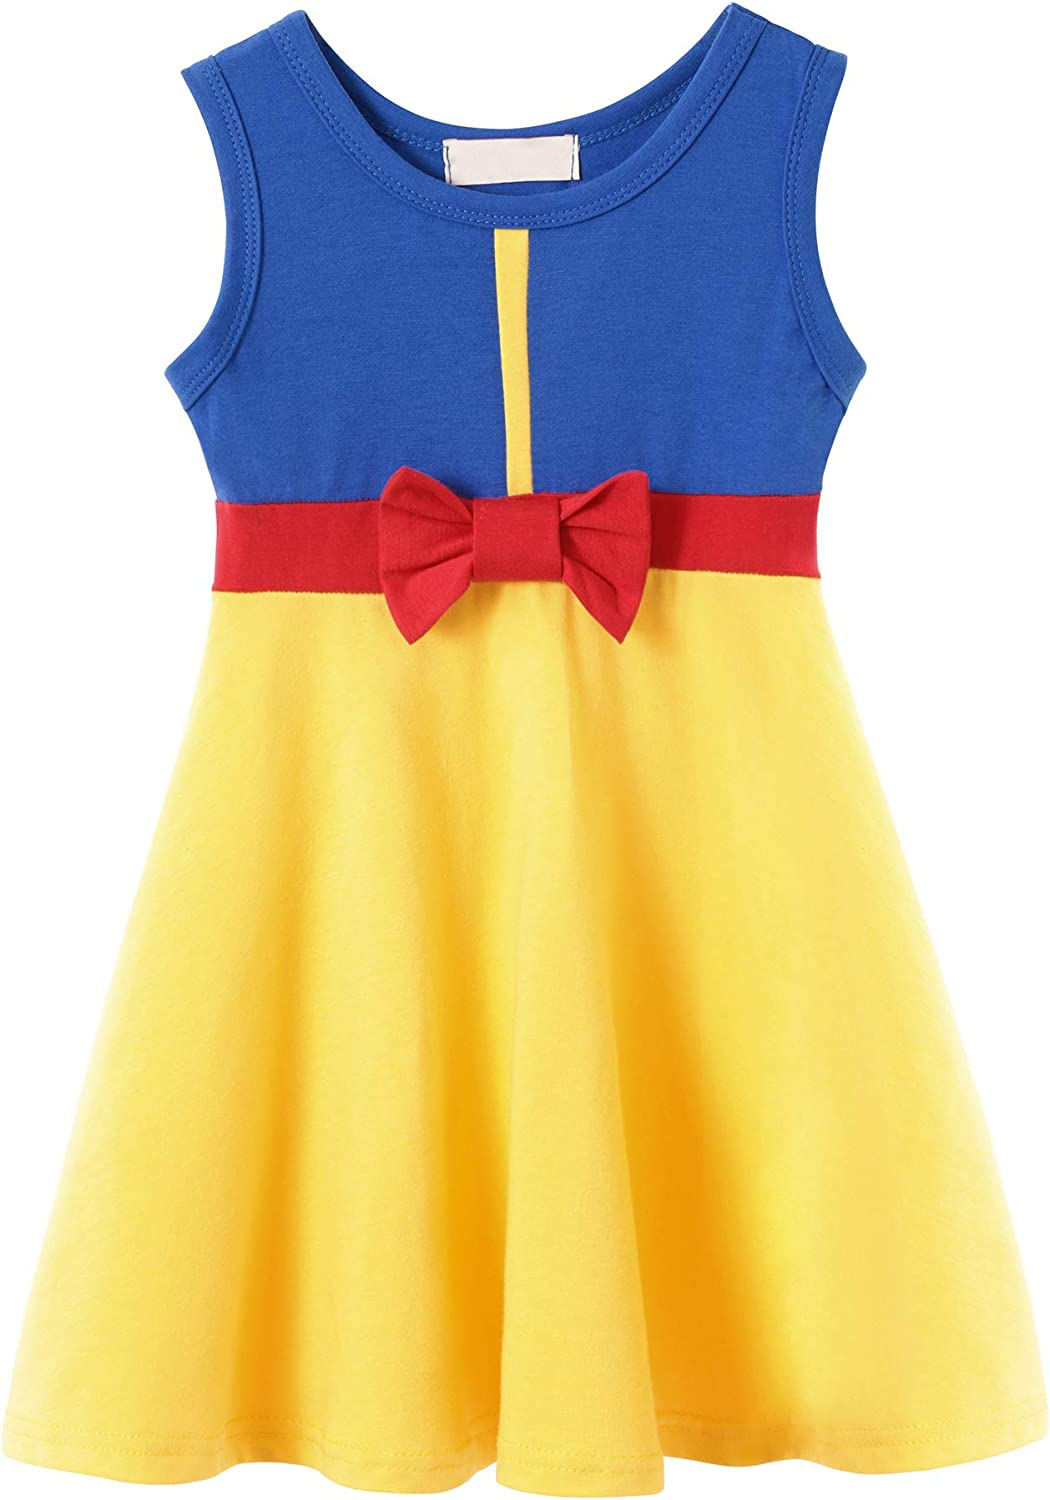 Cotton Baby Girl Clothes Summer Little Princess Toddler Kids Party Tutu Dresses